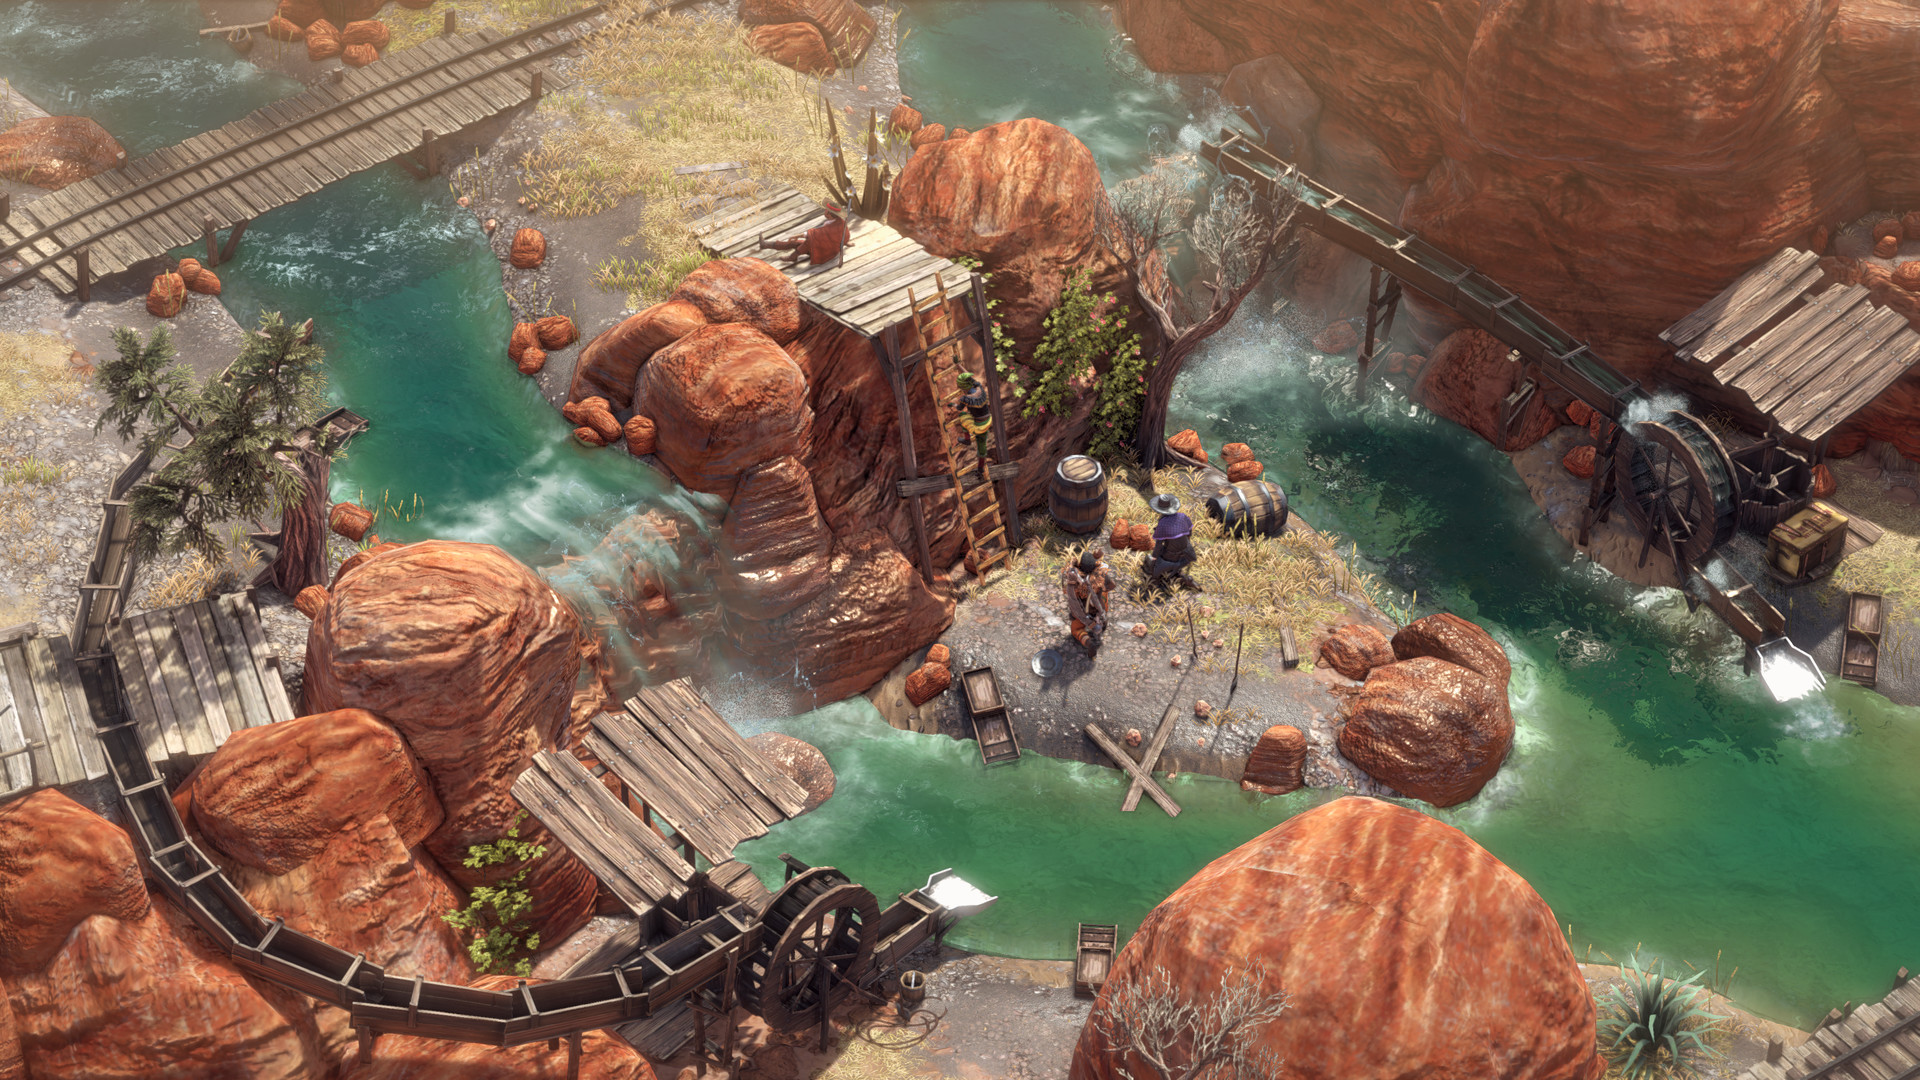 Find the best gaming PC for Desperados III